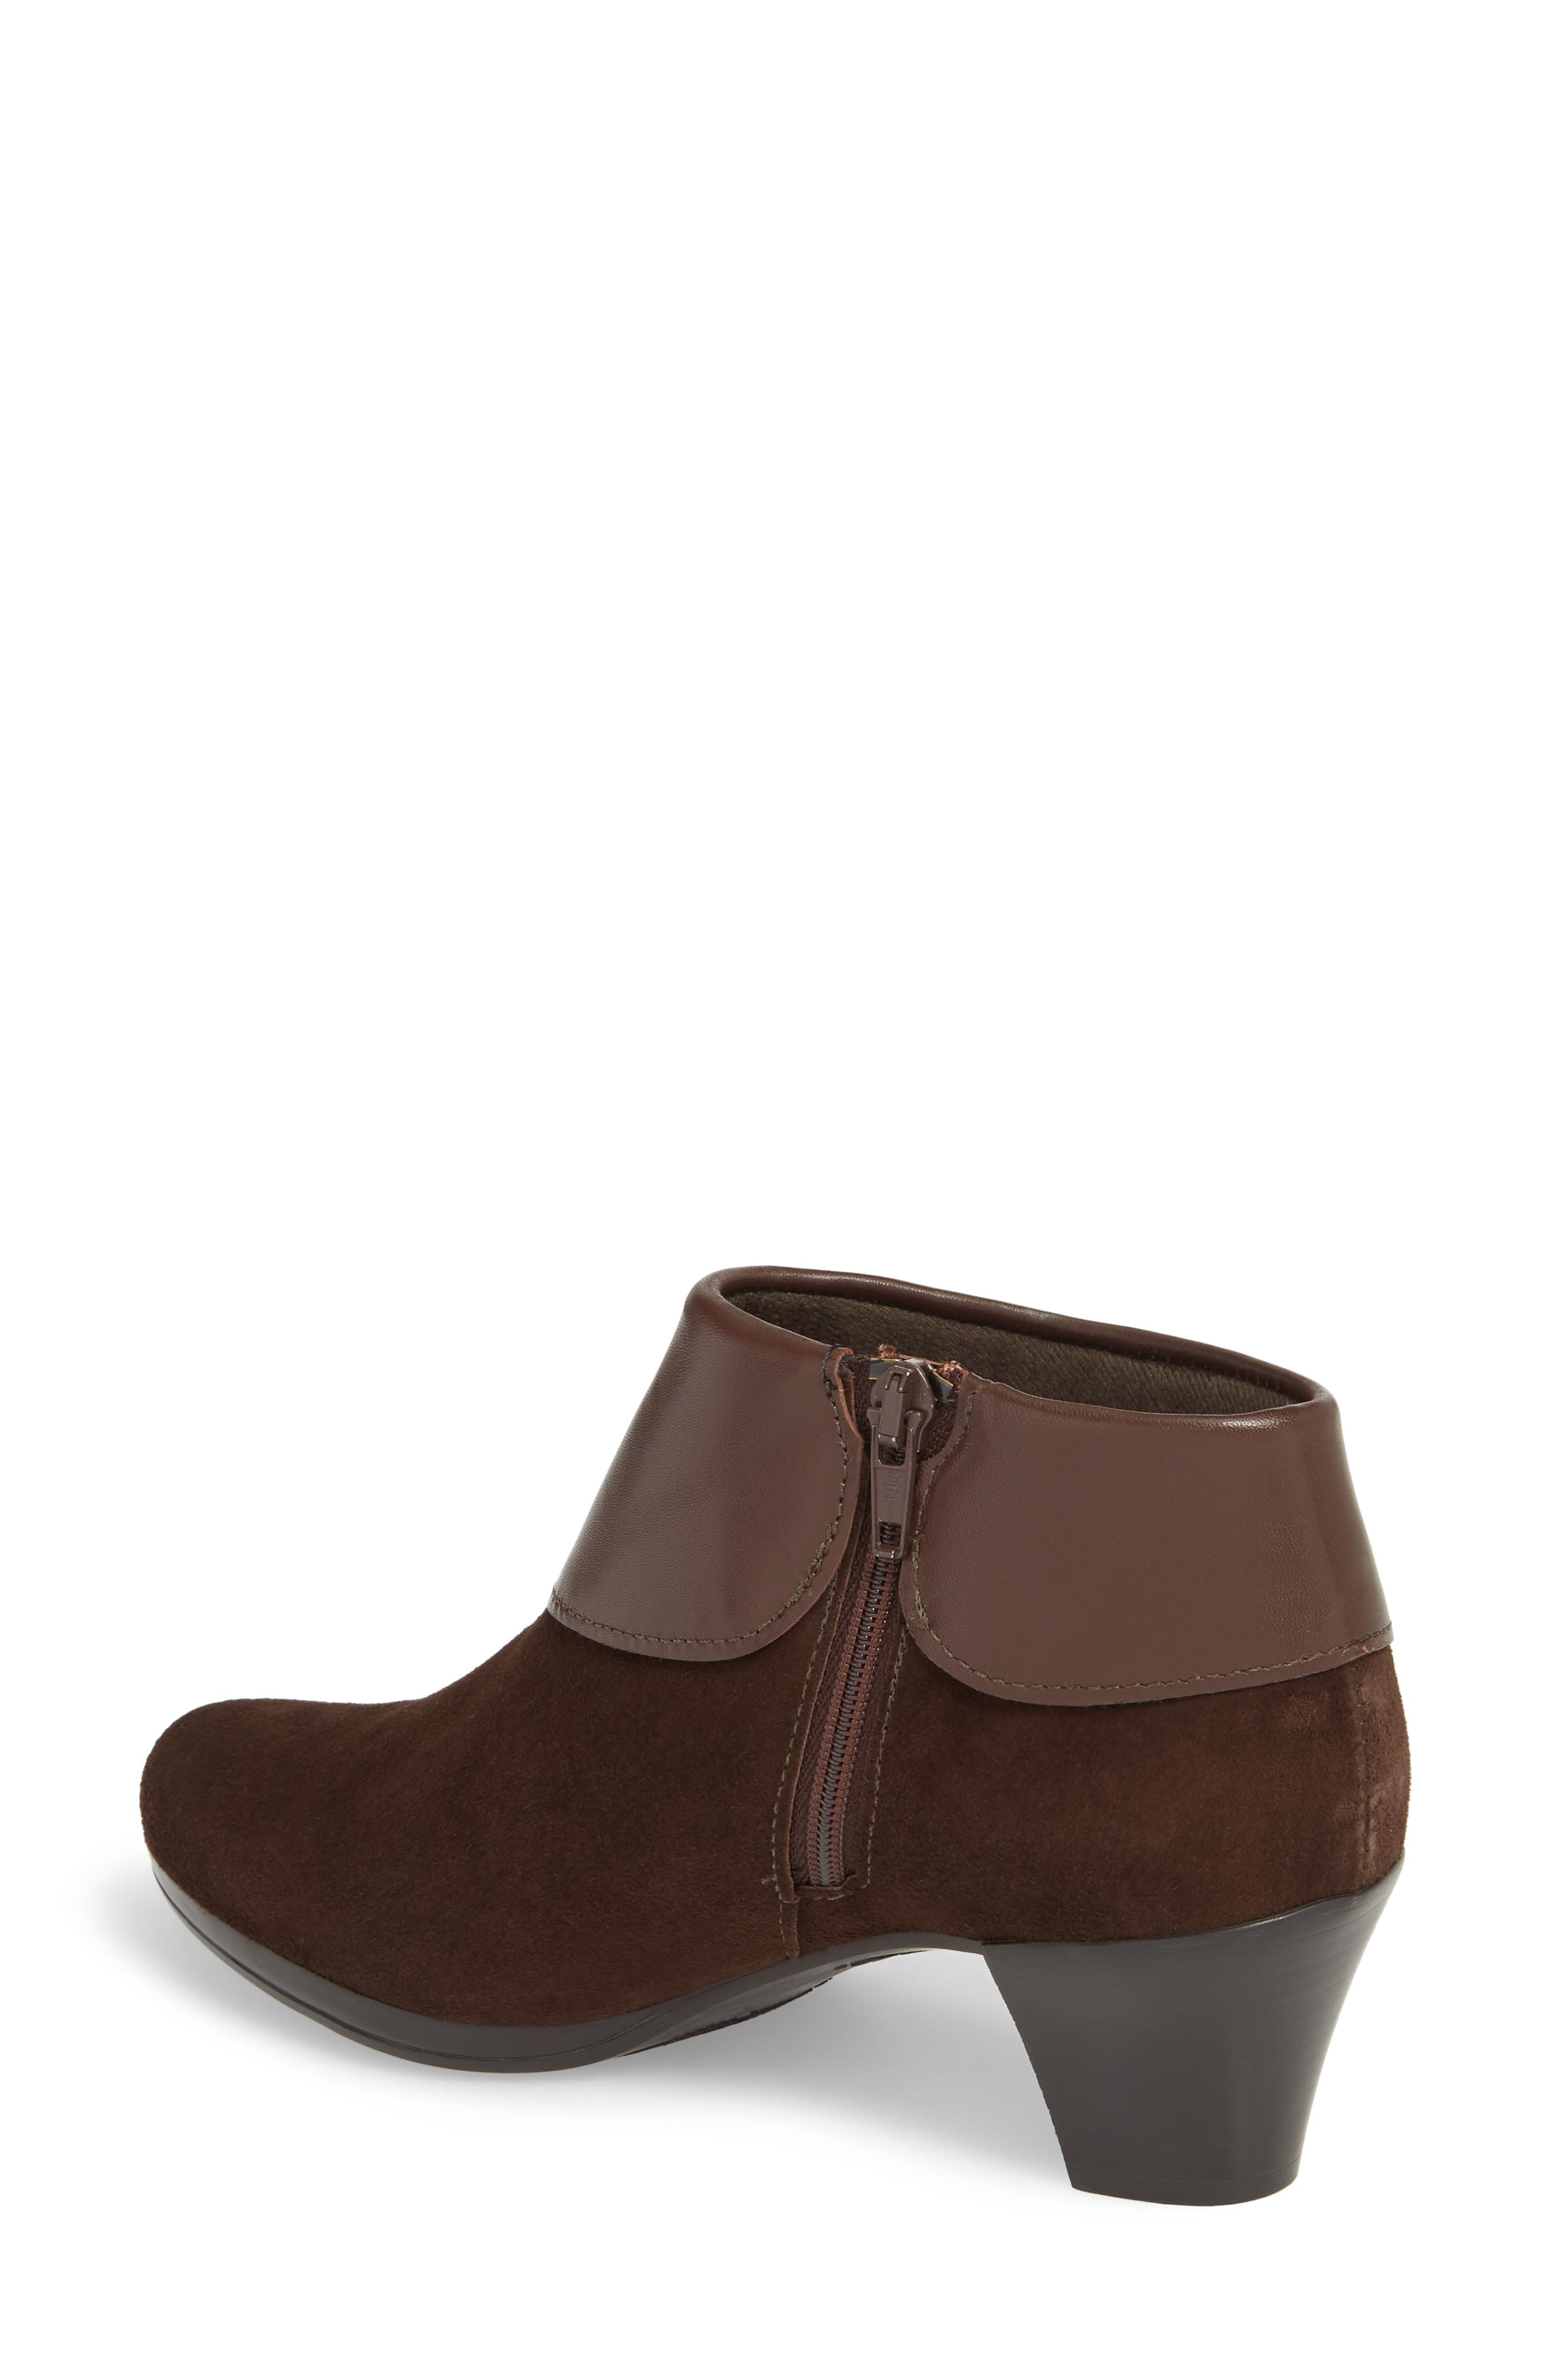 MUNRO, Gracee Boot, Alternate thumbnail 2, color, CHOCOLATE LEATHER